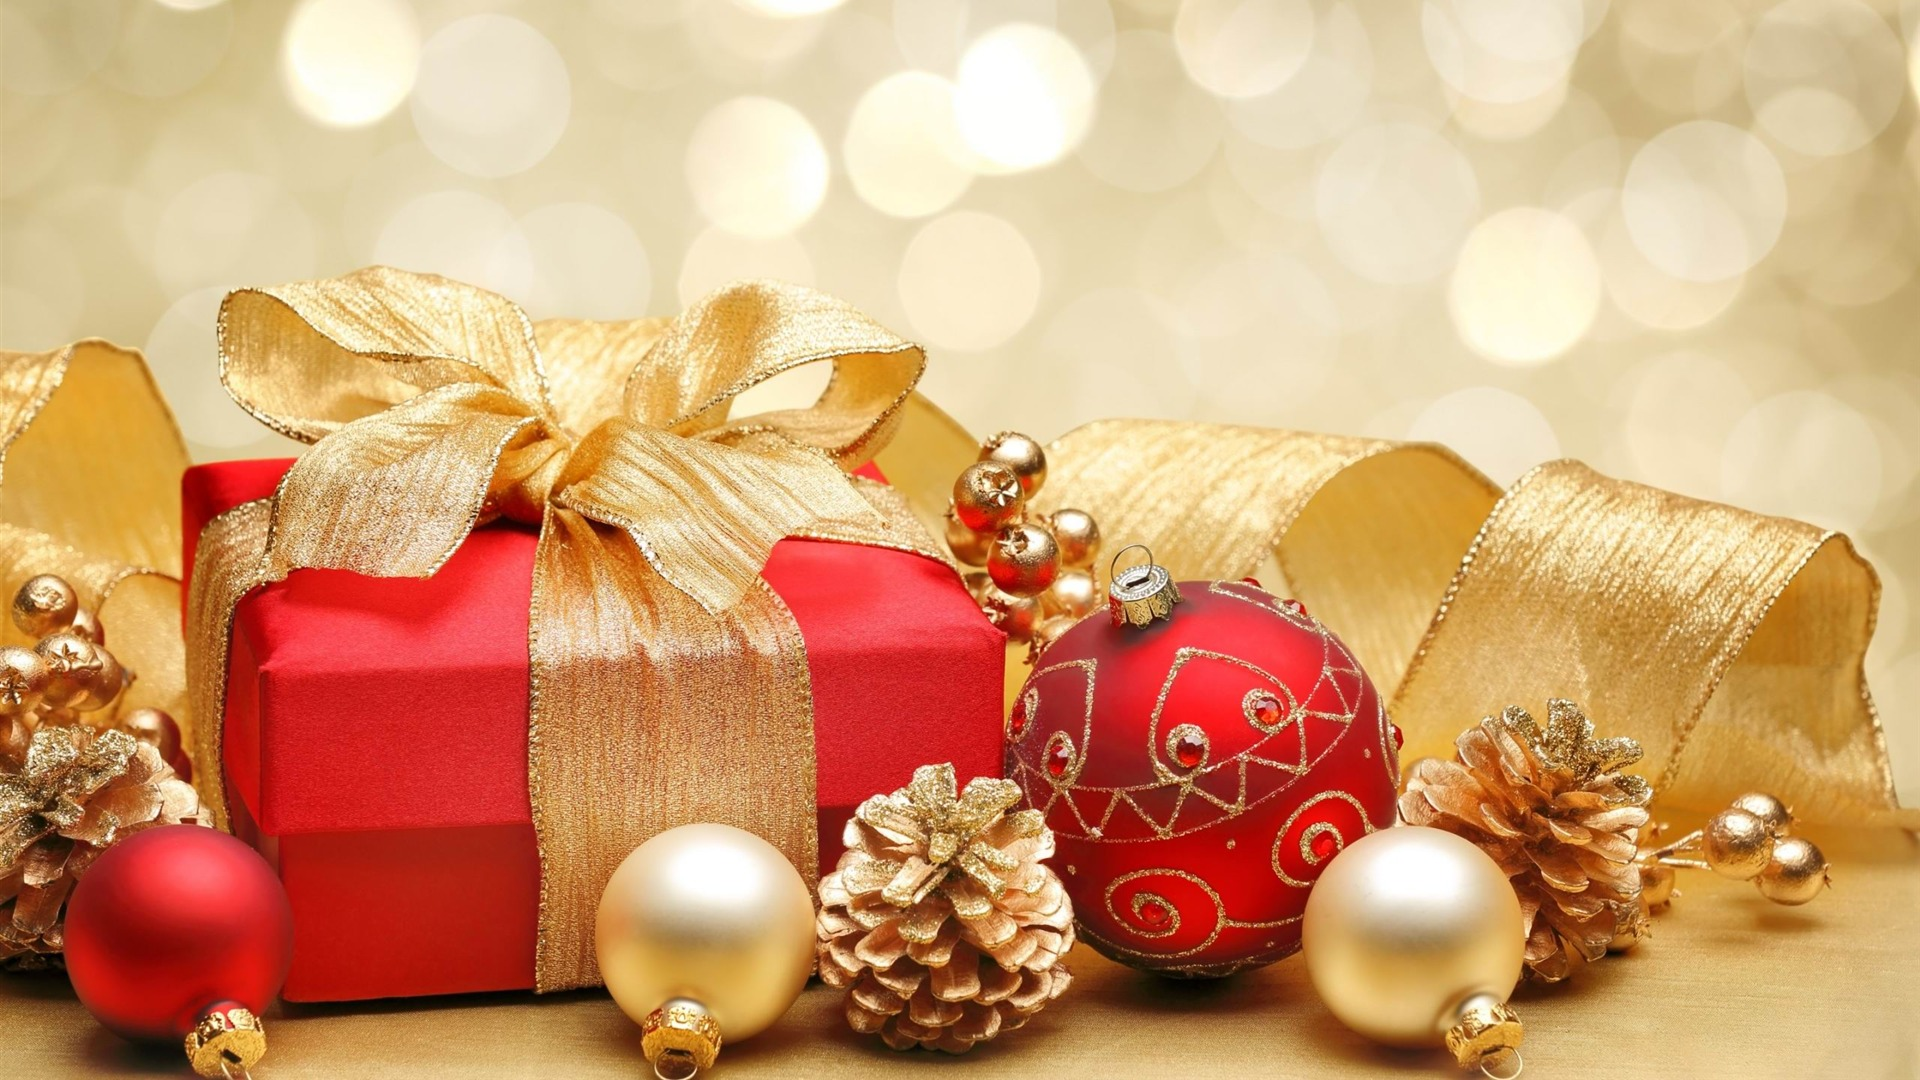 Christmas gift box decorations Wallpaper 1920x1080